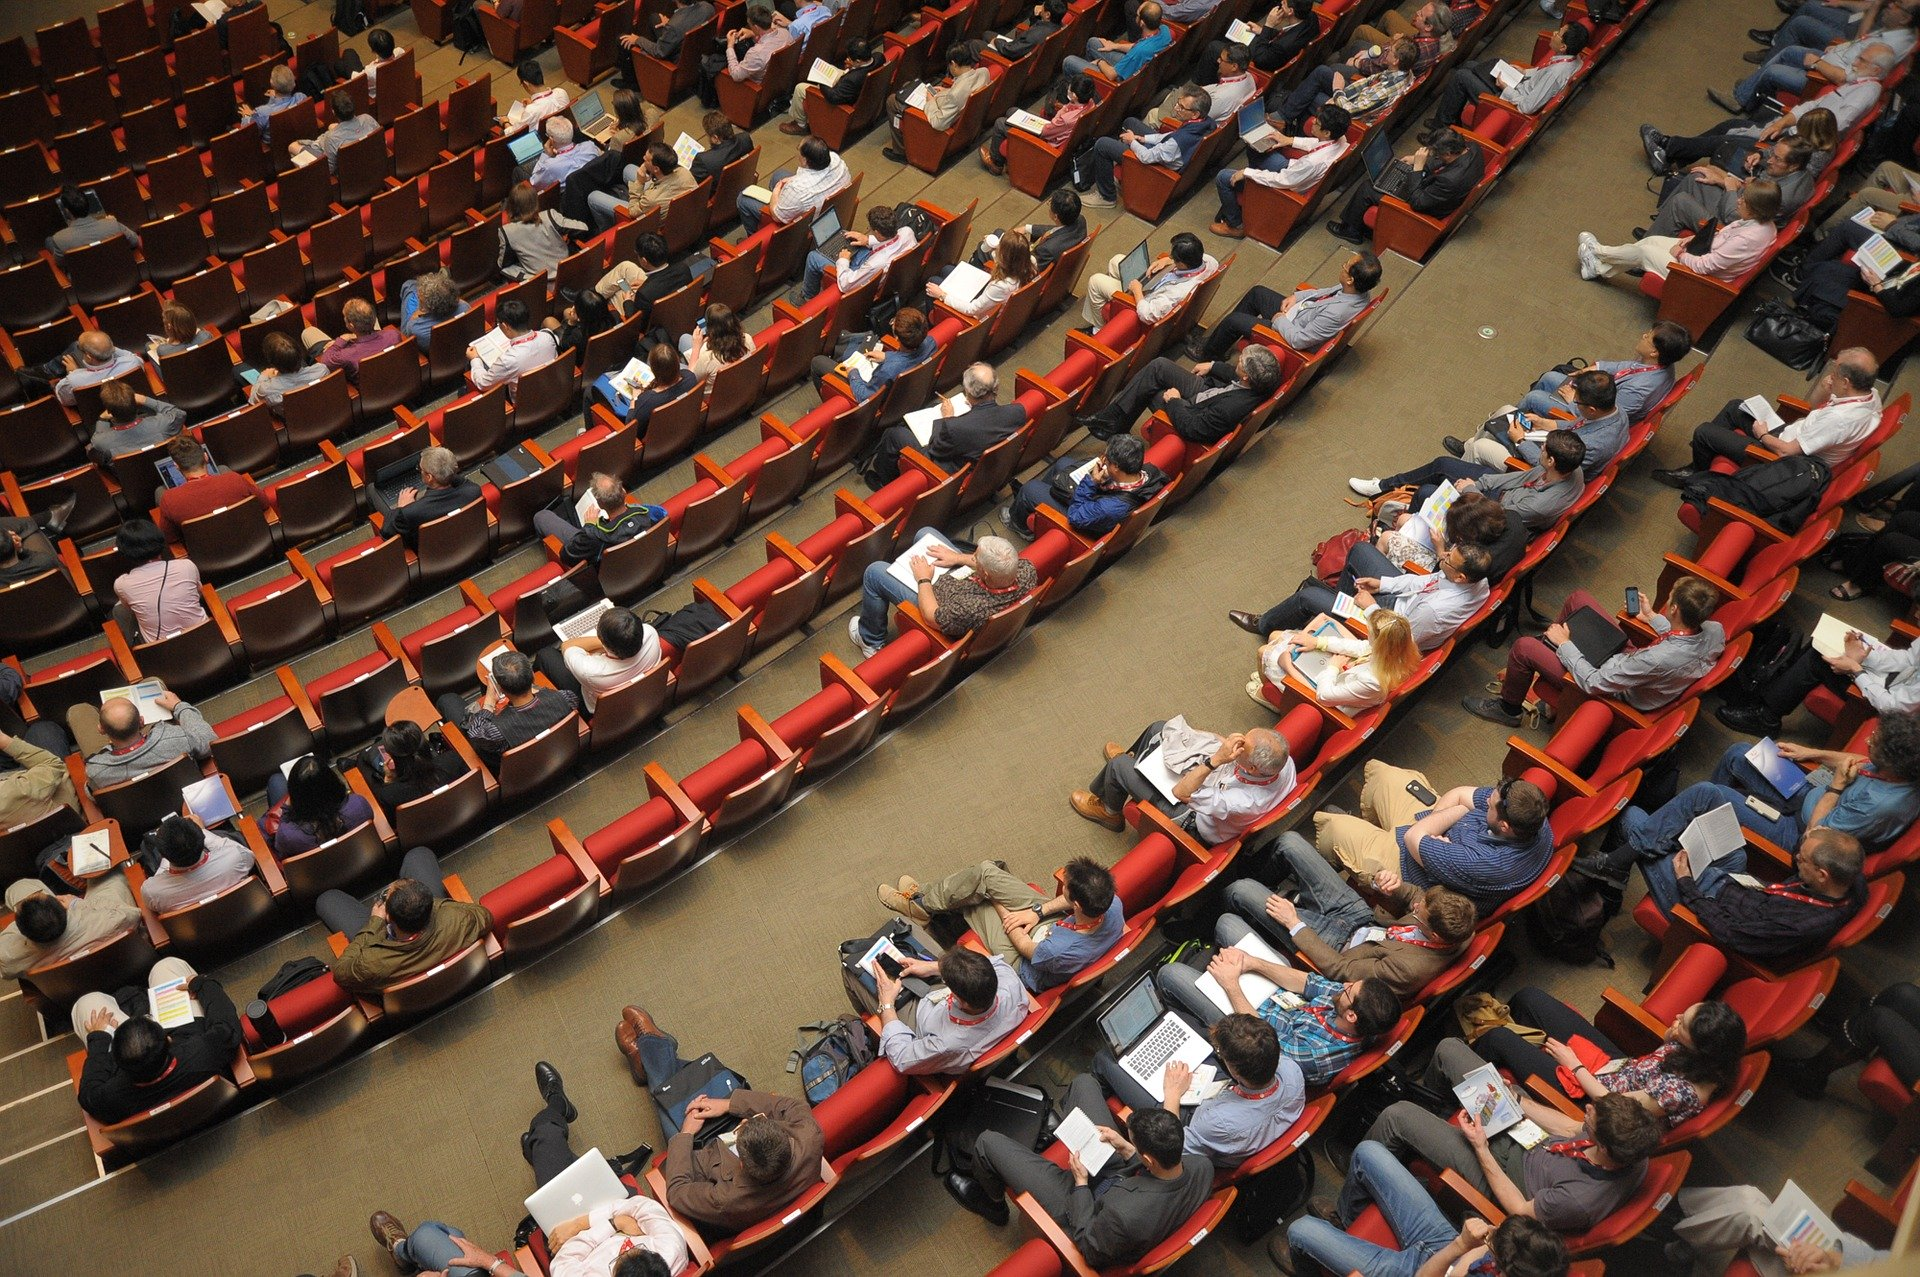 Lecture theatre half full from above